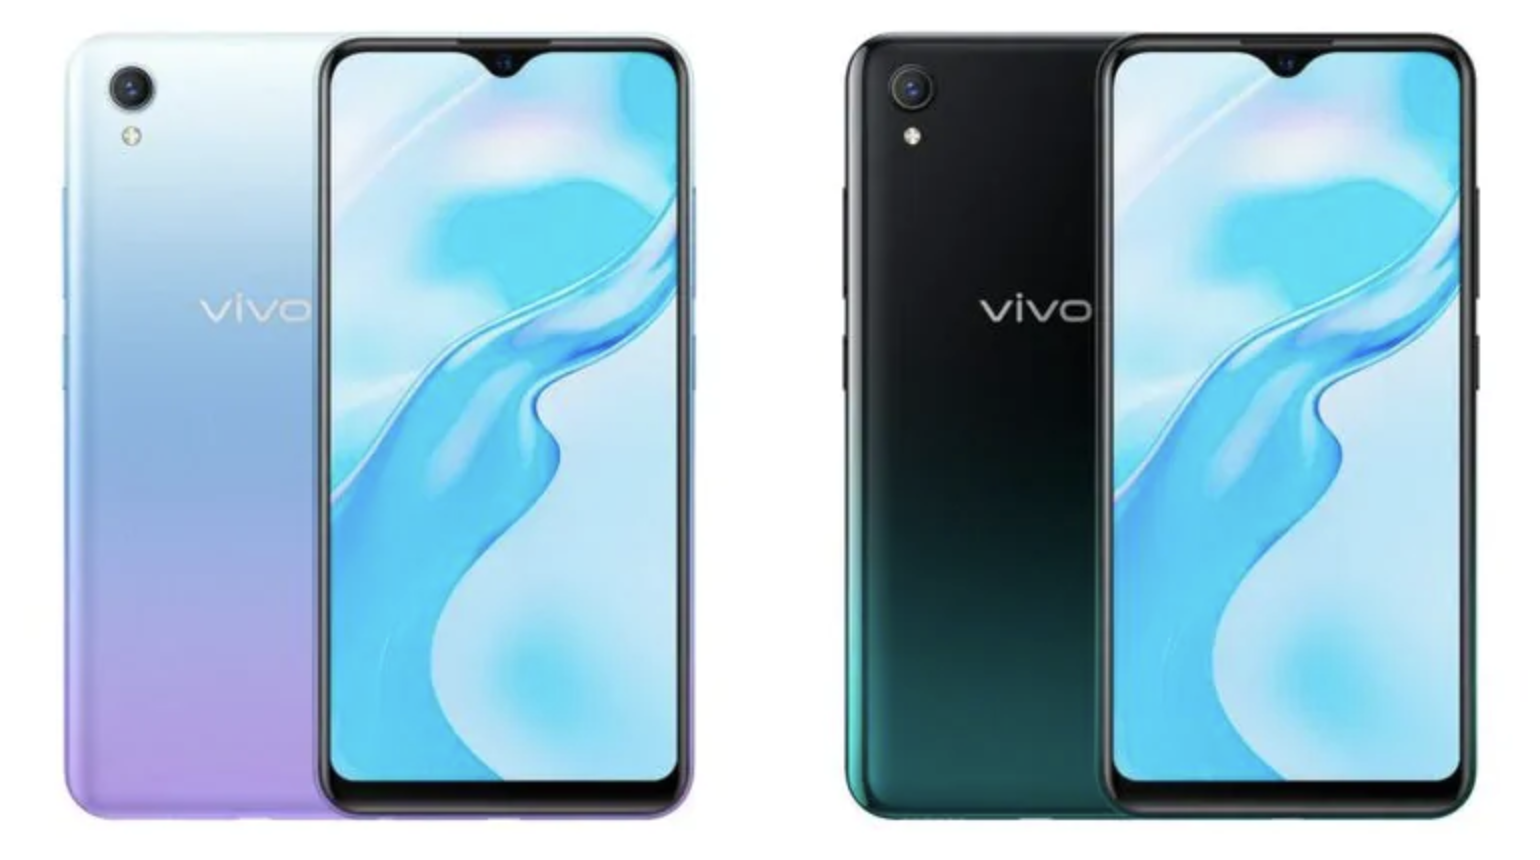 Vivo Y1s specs: Vivo Y1s with 4030 mAh battery launched - Times of India